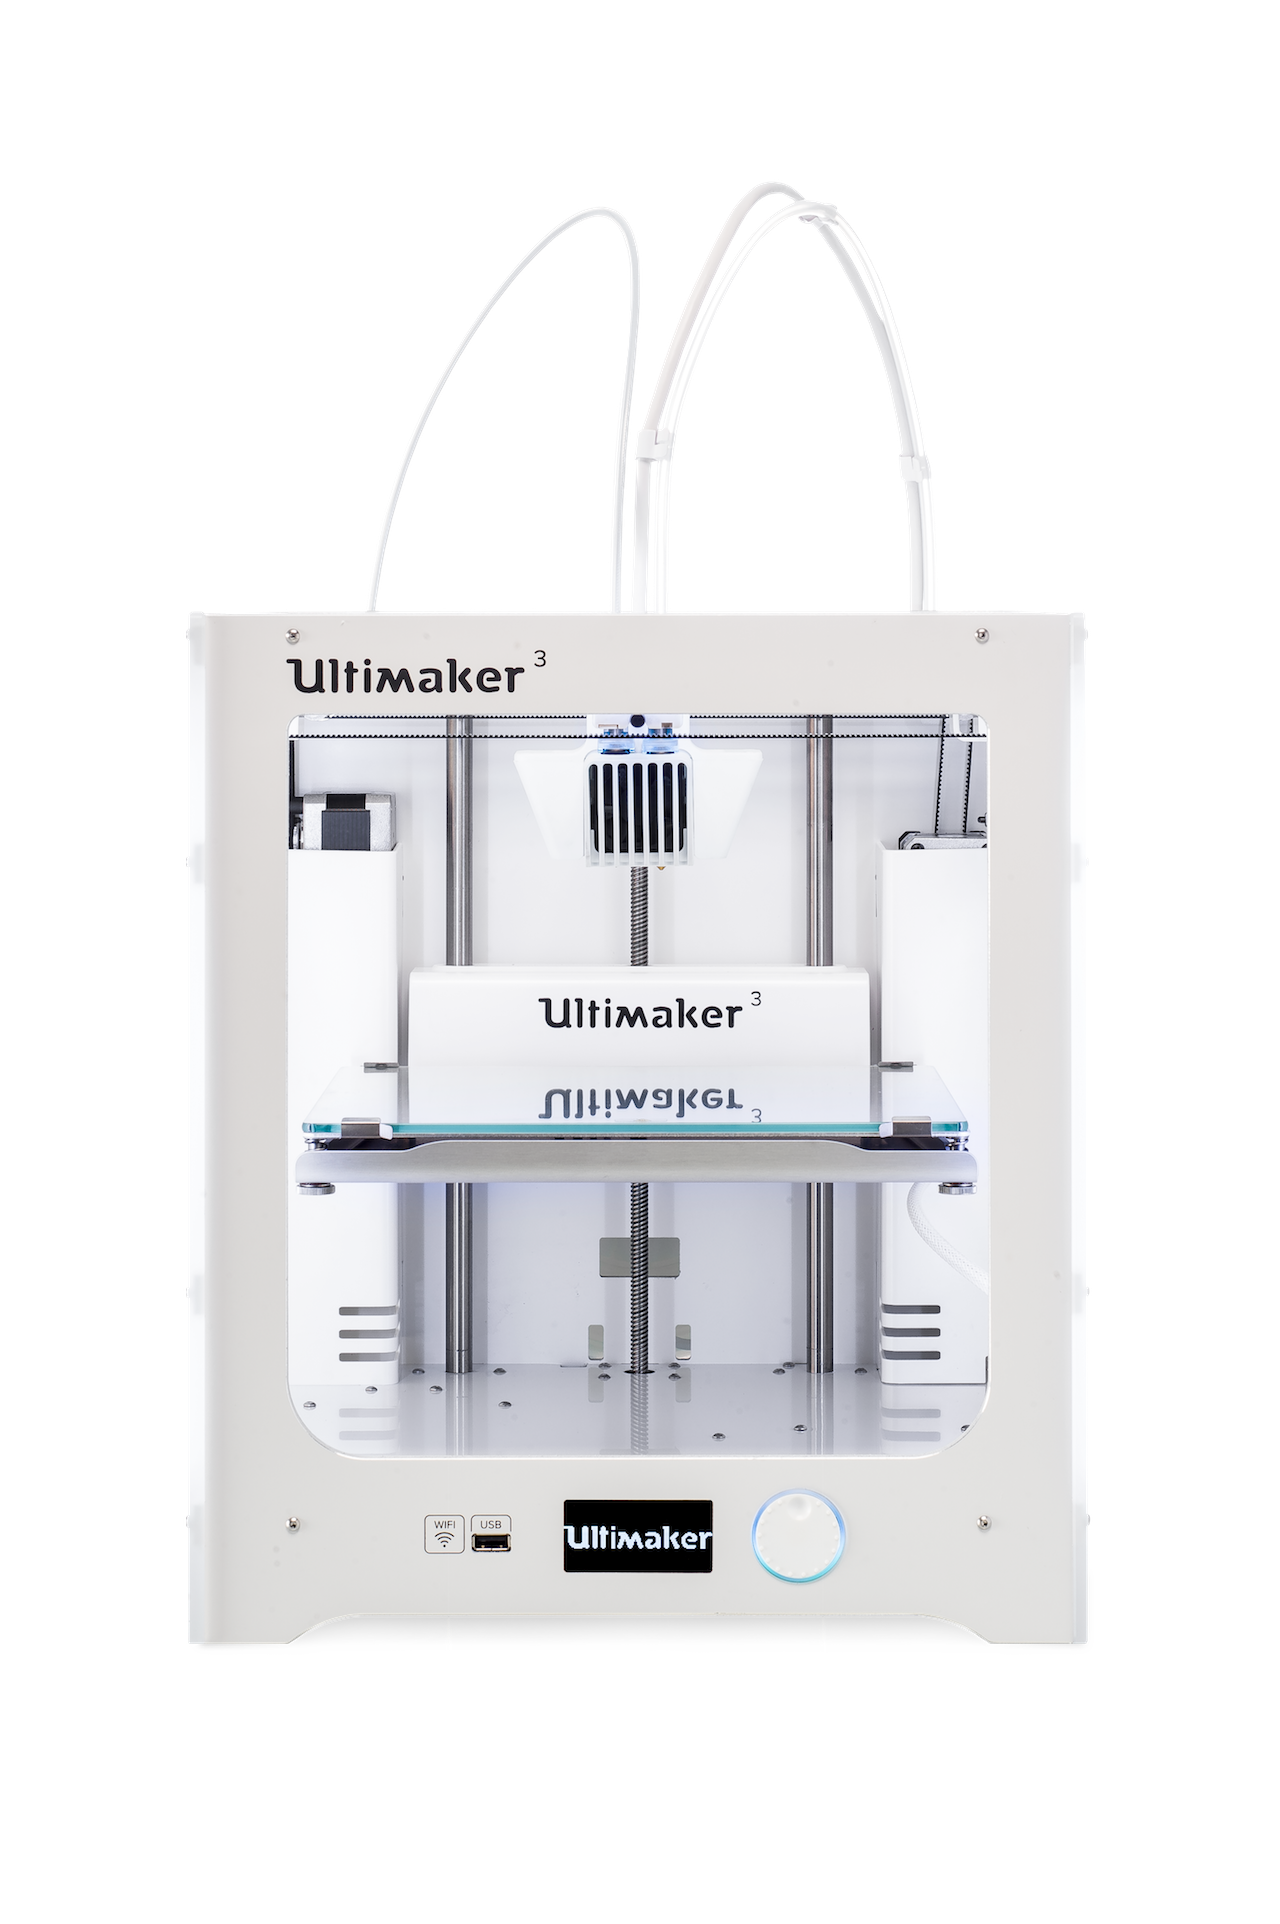 , Ultimaker's New Ultimaker 3 Dual-Extrusion 3D Printer